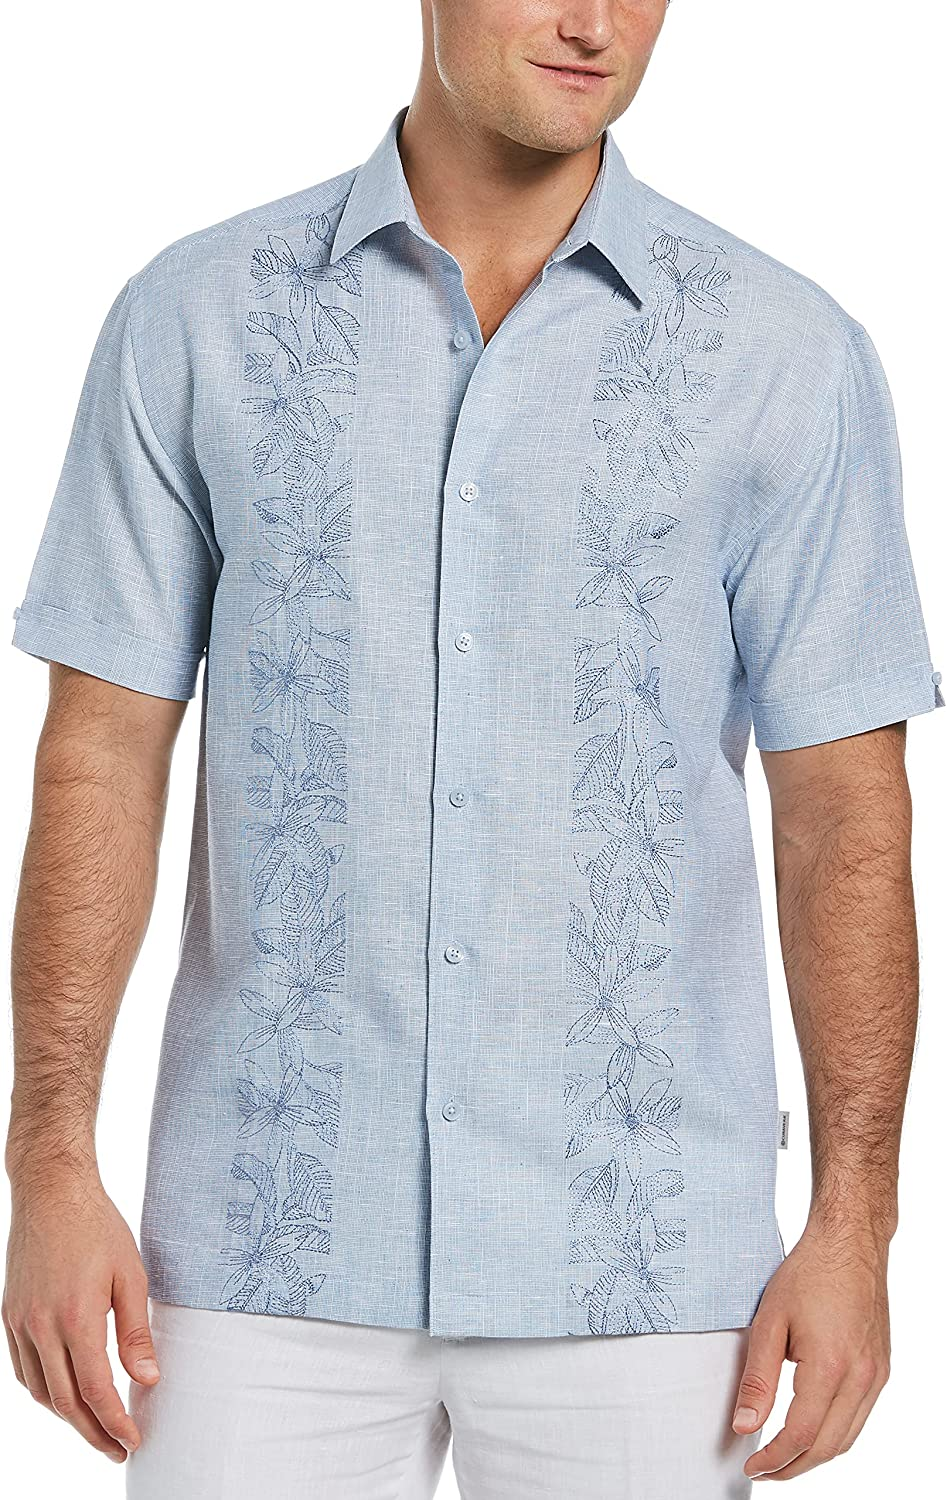 Cubavera Men's Tropical Panel Linen-Blend Short 2021 spring and summer new Embroidered 4 years warranty Slee